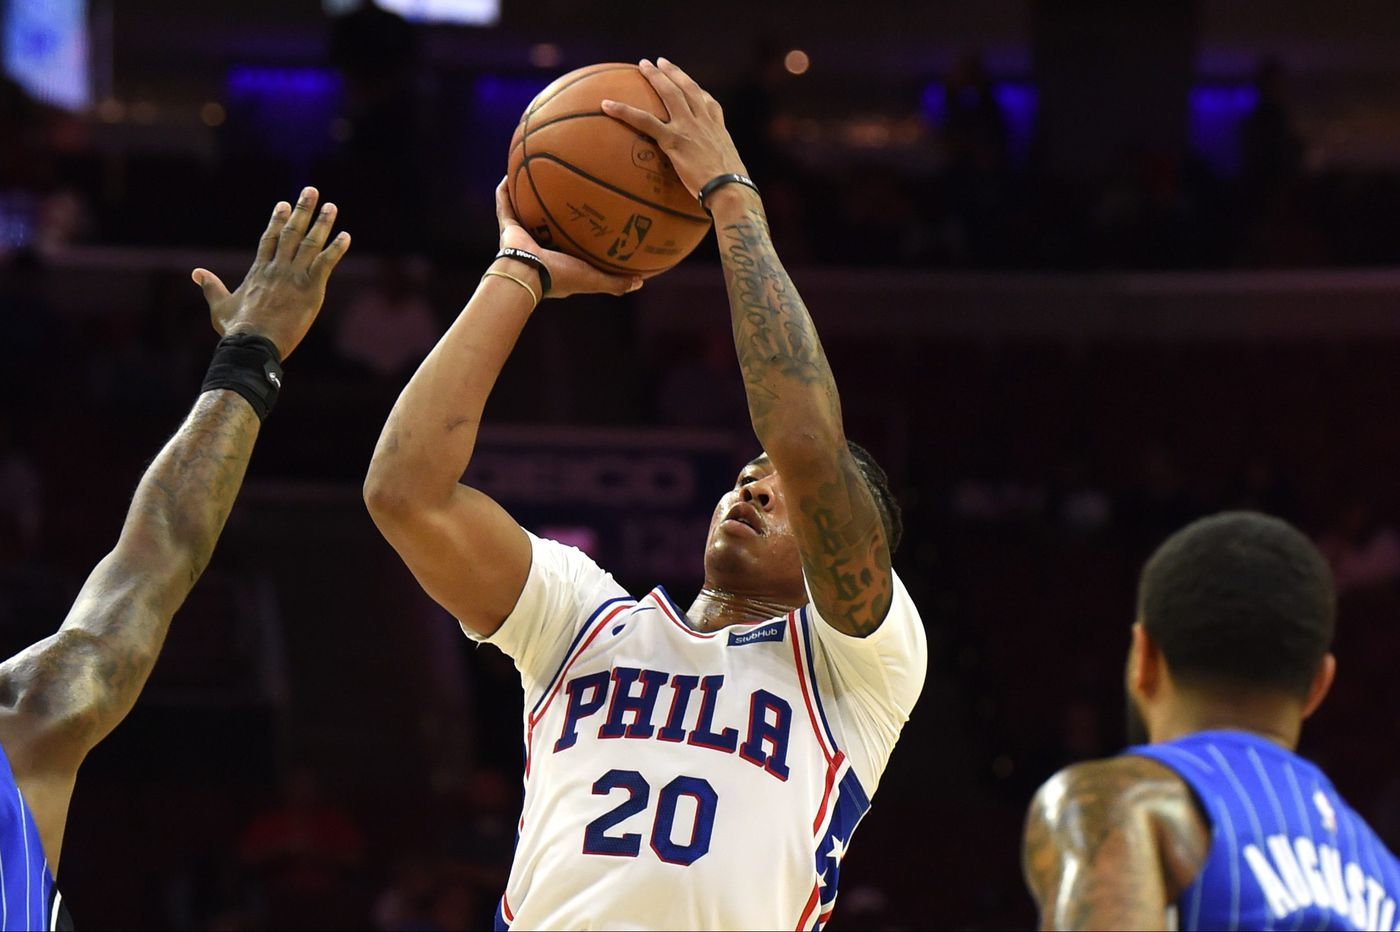 Markelle Fultz sees himself as the third star the Sixers seek